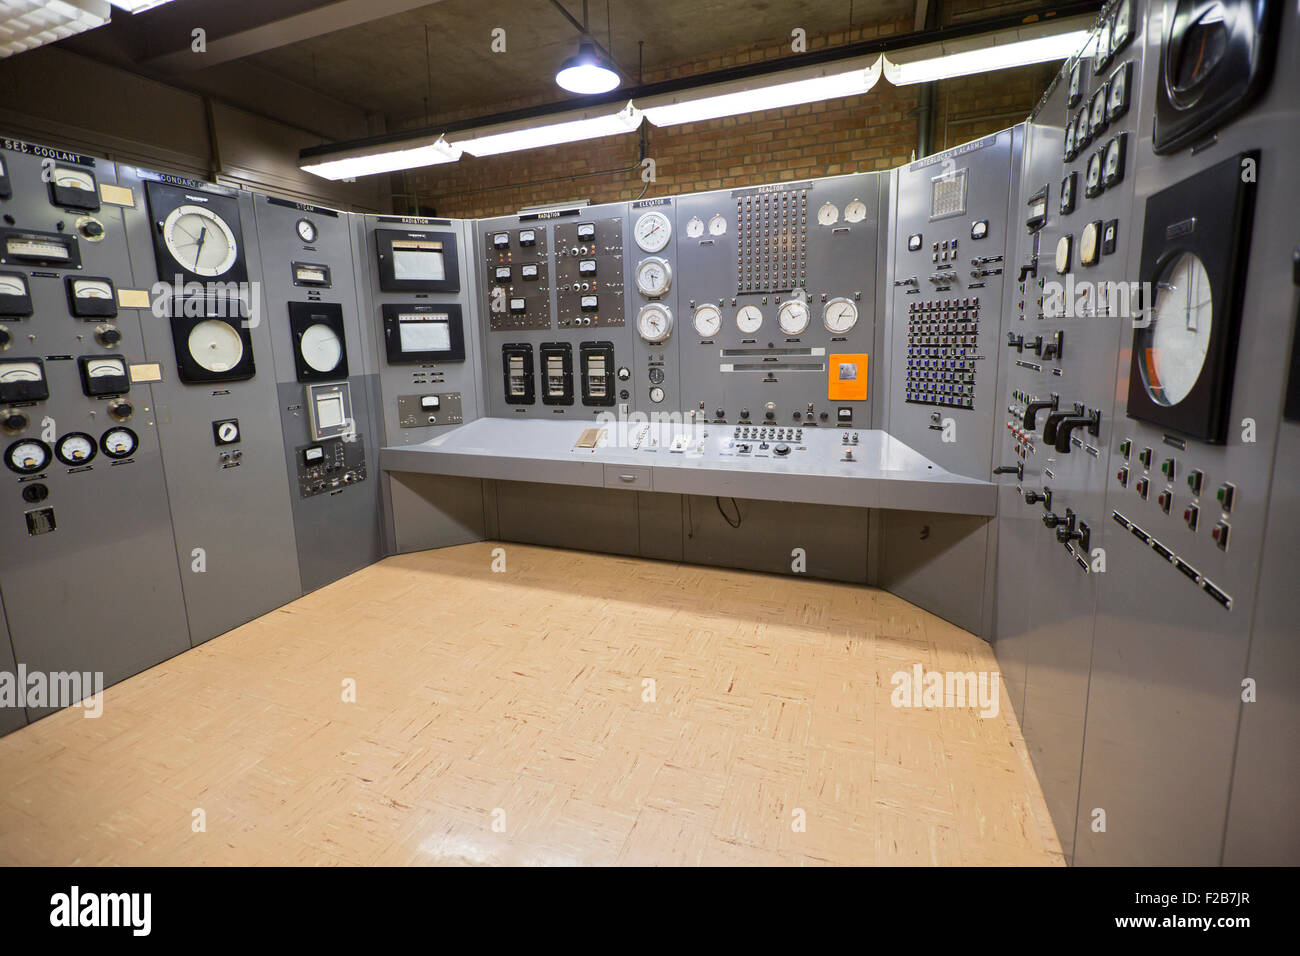 Arco, Idaho - The control room of Experimental Breeder Reactor No. 1 (EBR-1), the first nuclear reactor to produce - Stock Image